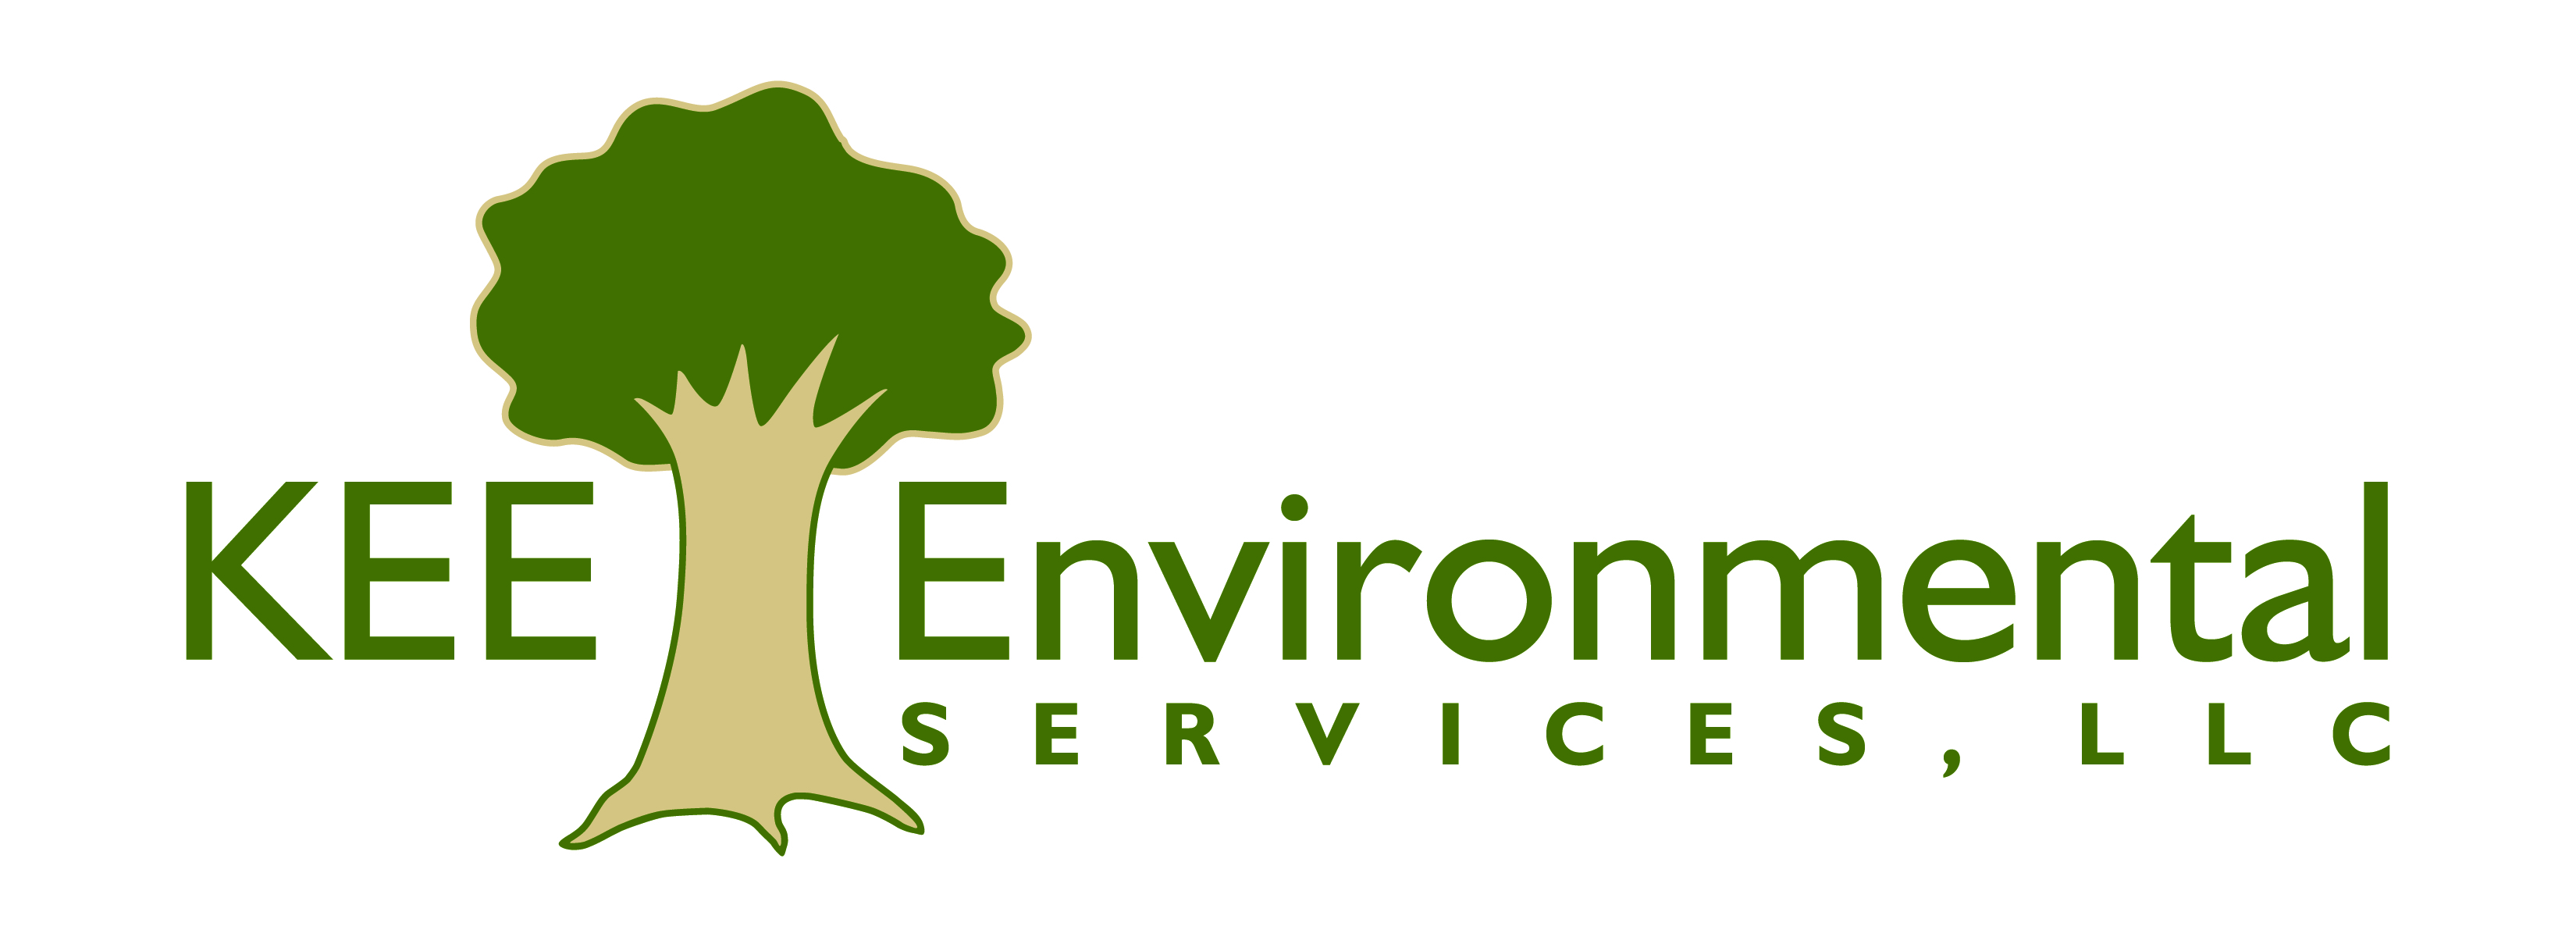 KEE Environmental Services, LLC